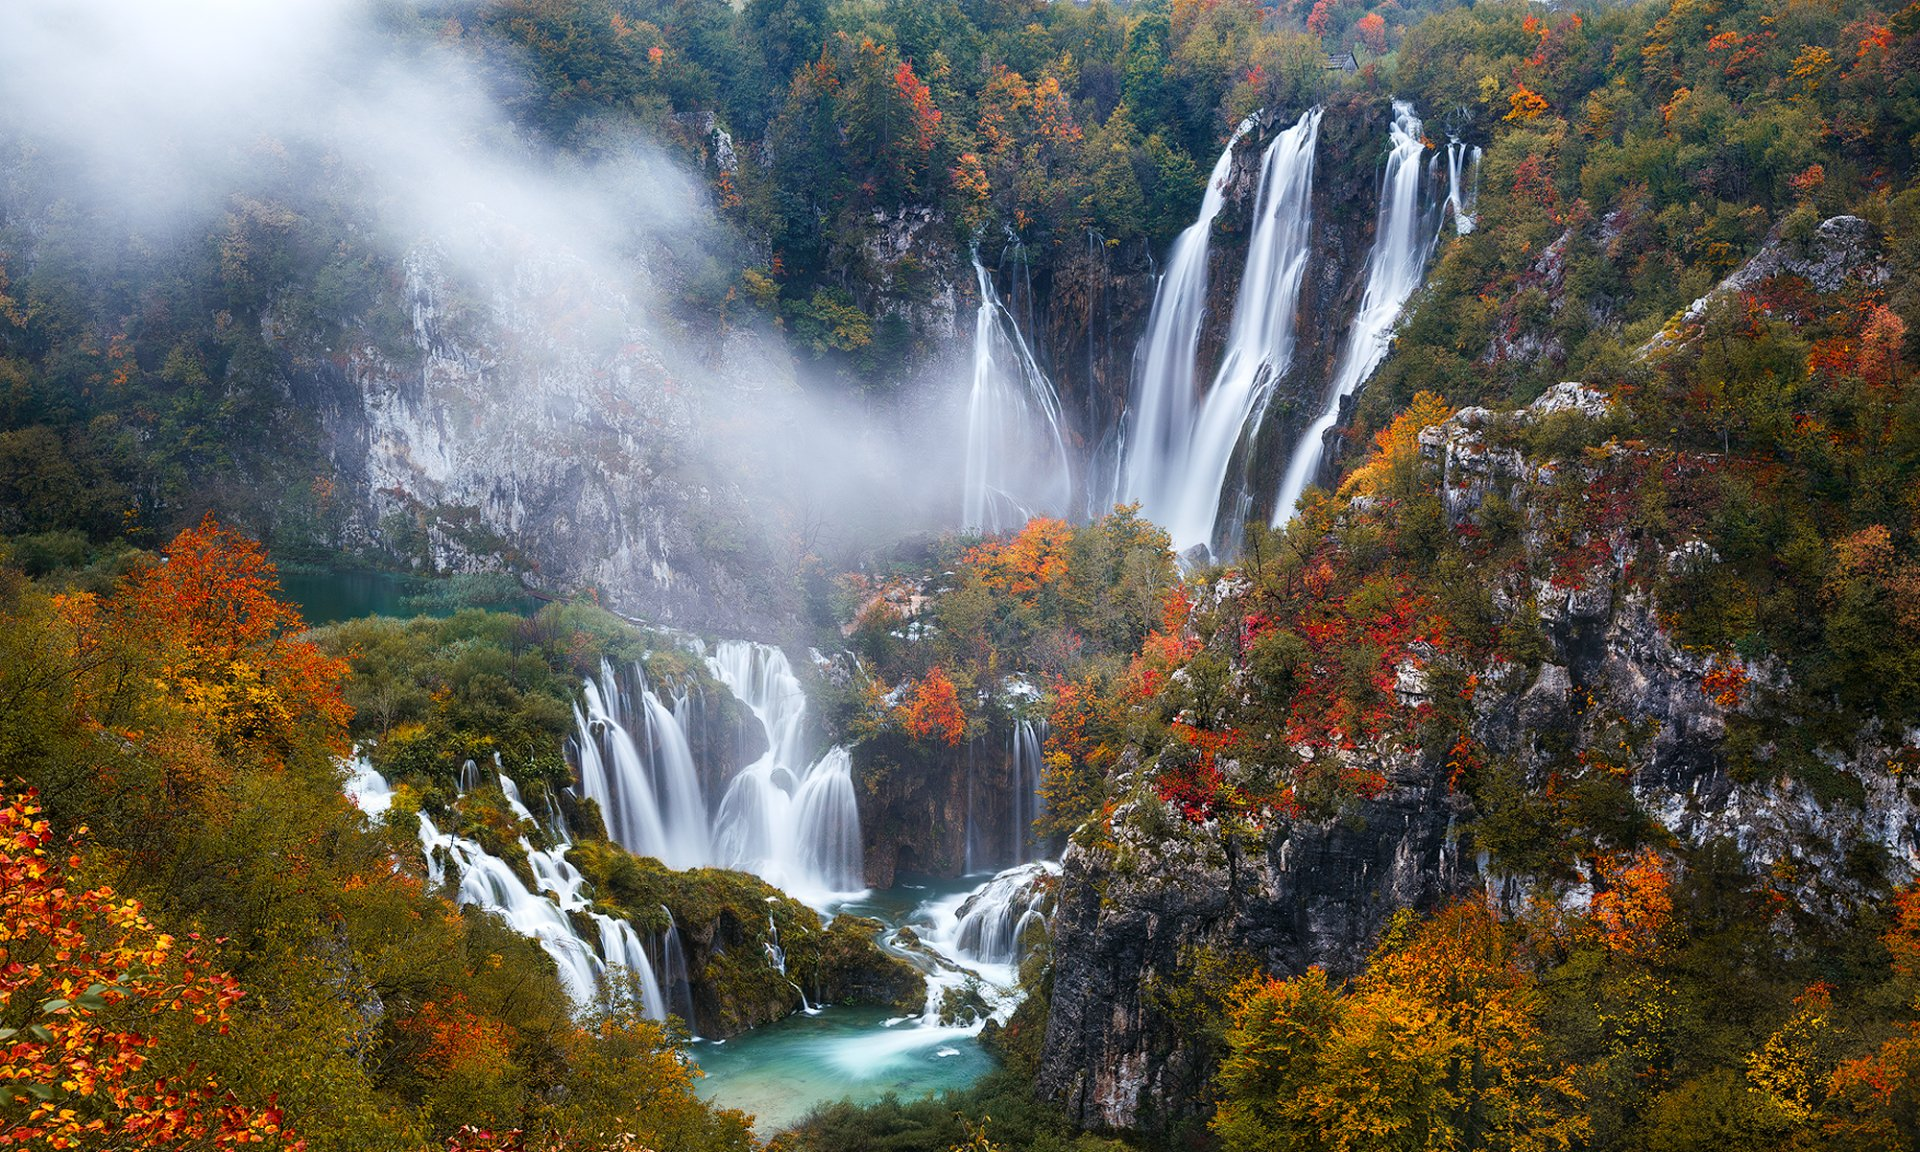 Fall Foliage Iphone Wallpaper Plitvice Lakes National Park In Autumn Hd Wallpaper